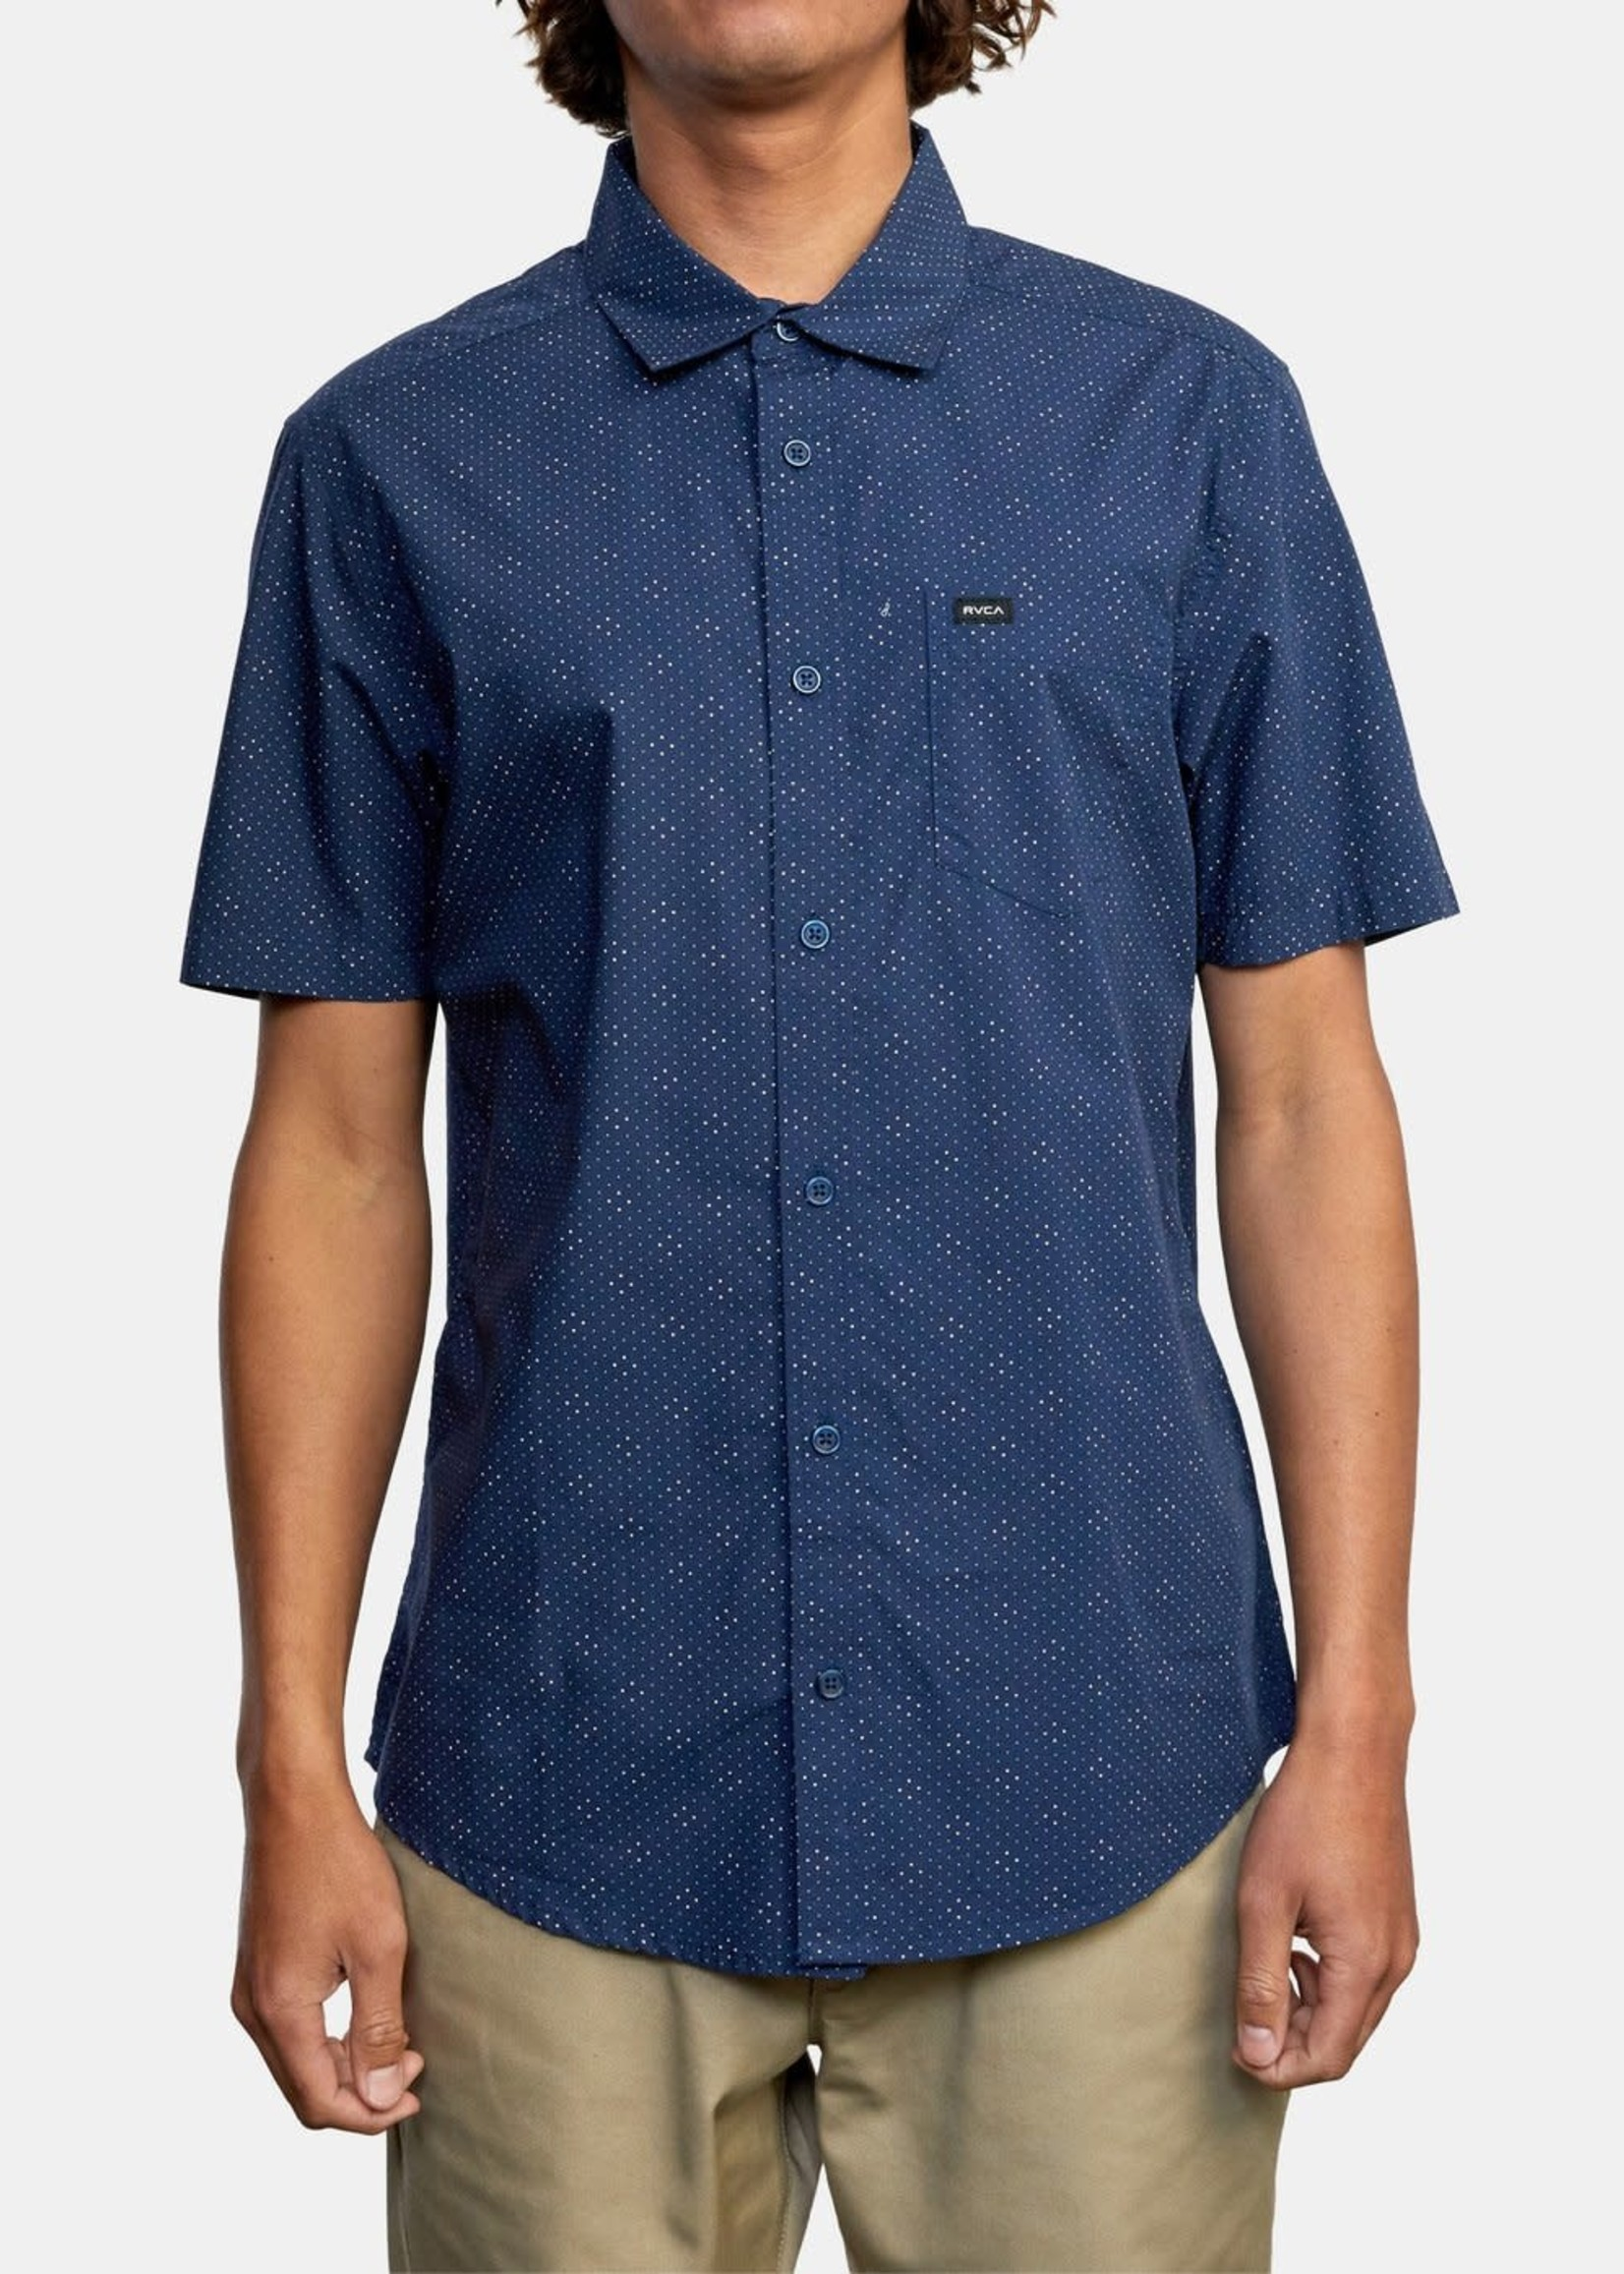 RVCA Carlo Dot Short Sleeve Shirt